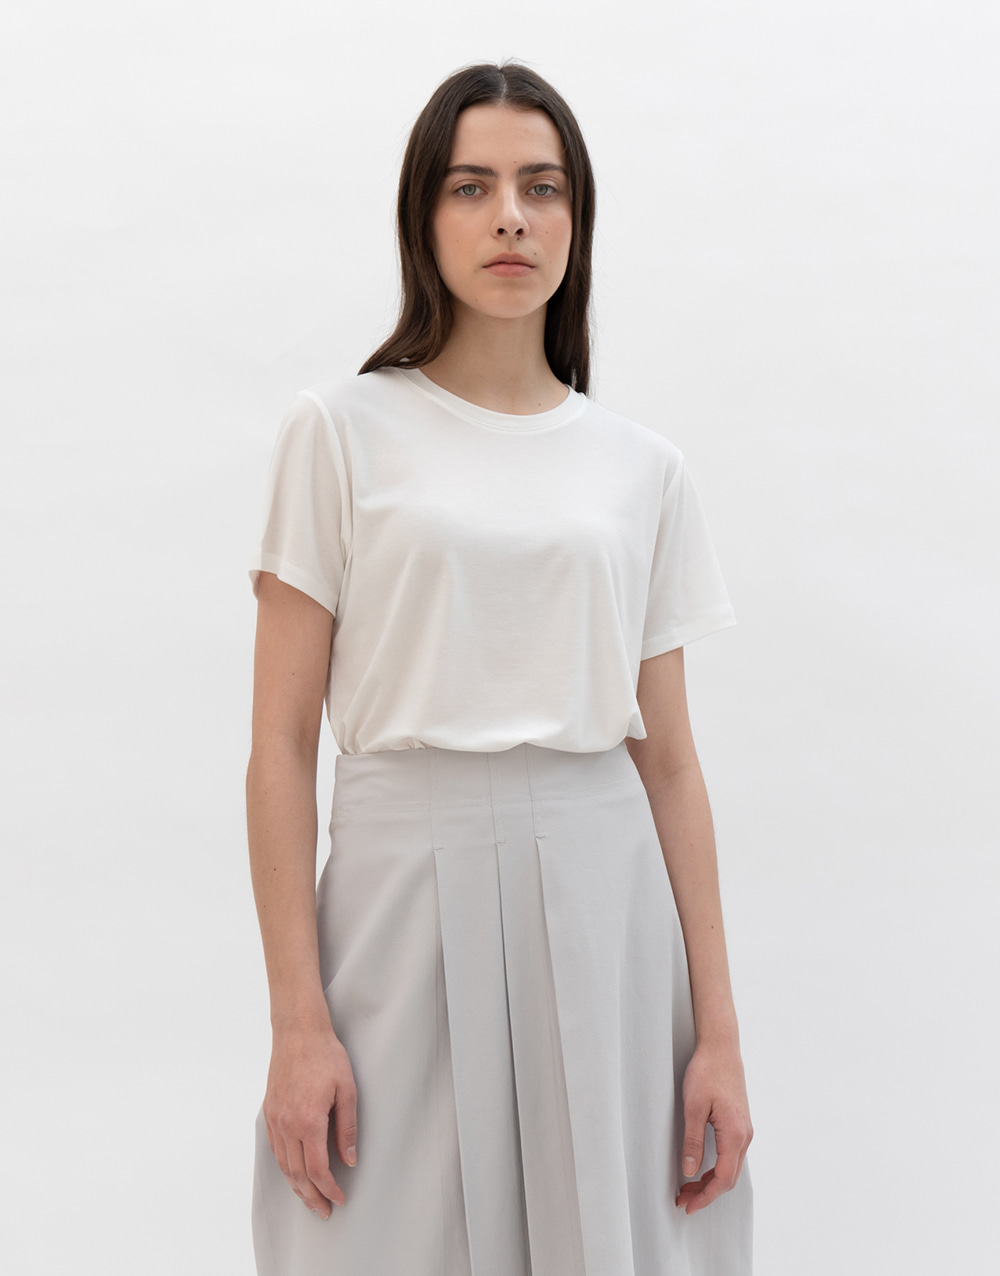 GBH APPAREL ADULT  Lyocell Basic Top  WHITE